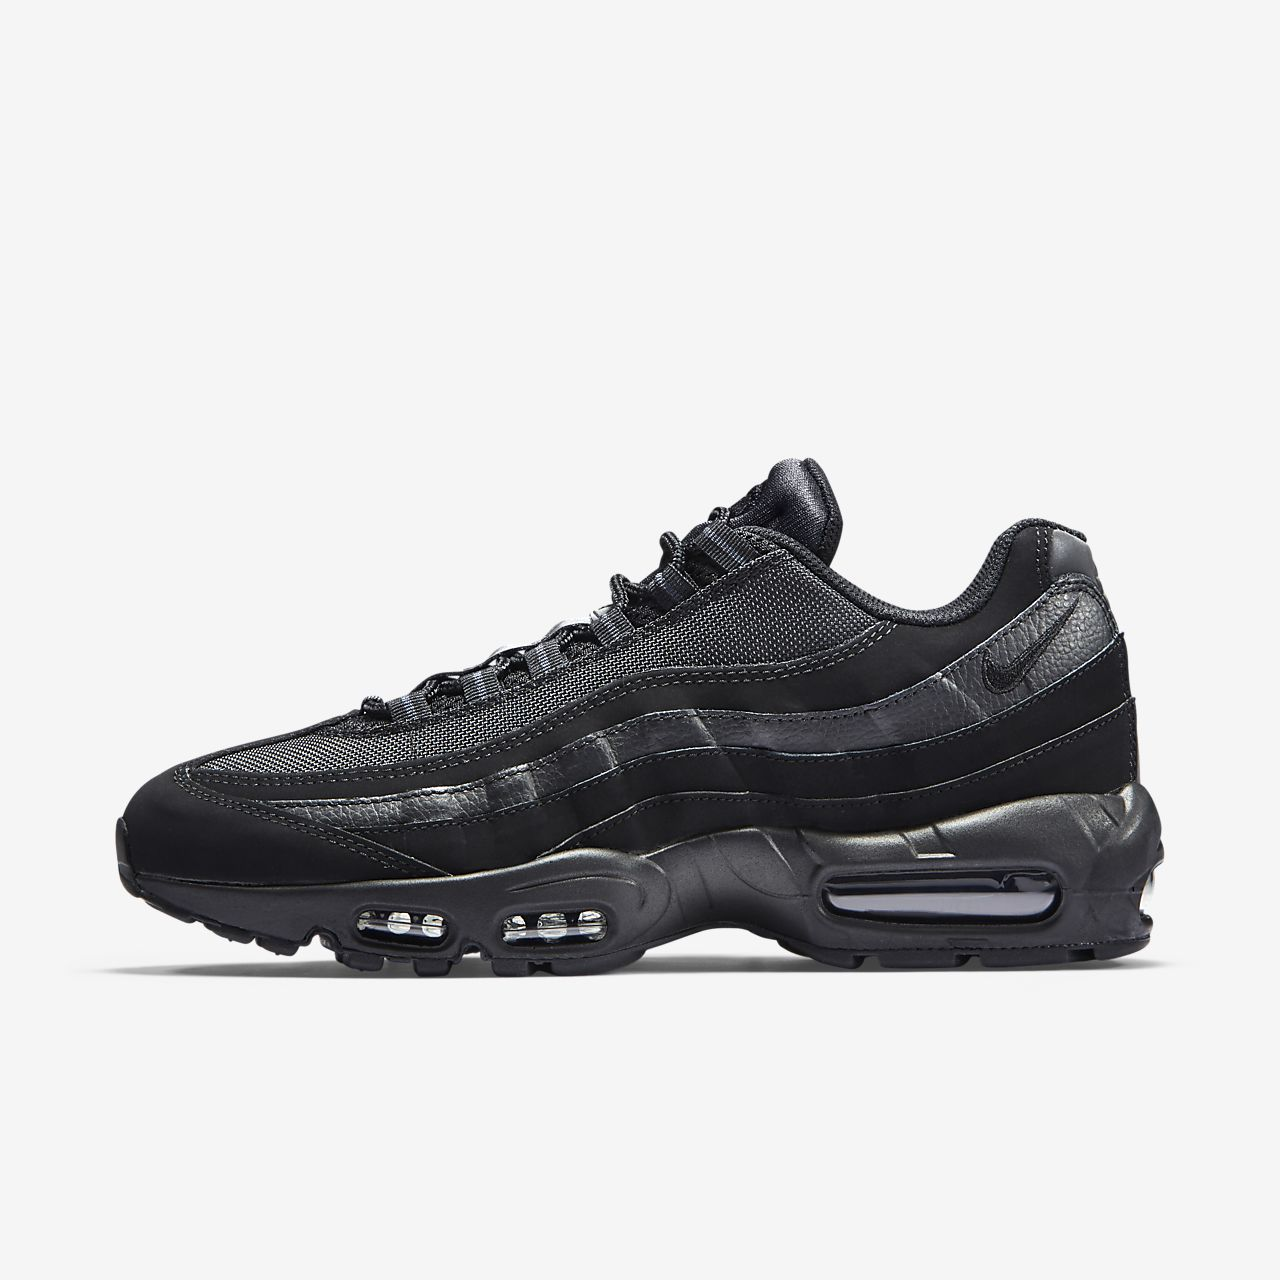 separation shoes 24bdd 99123 ... Nike Air Max 95 Zapatillas - Hombre